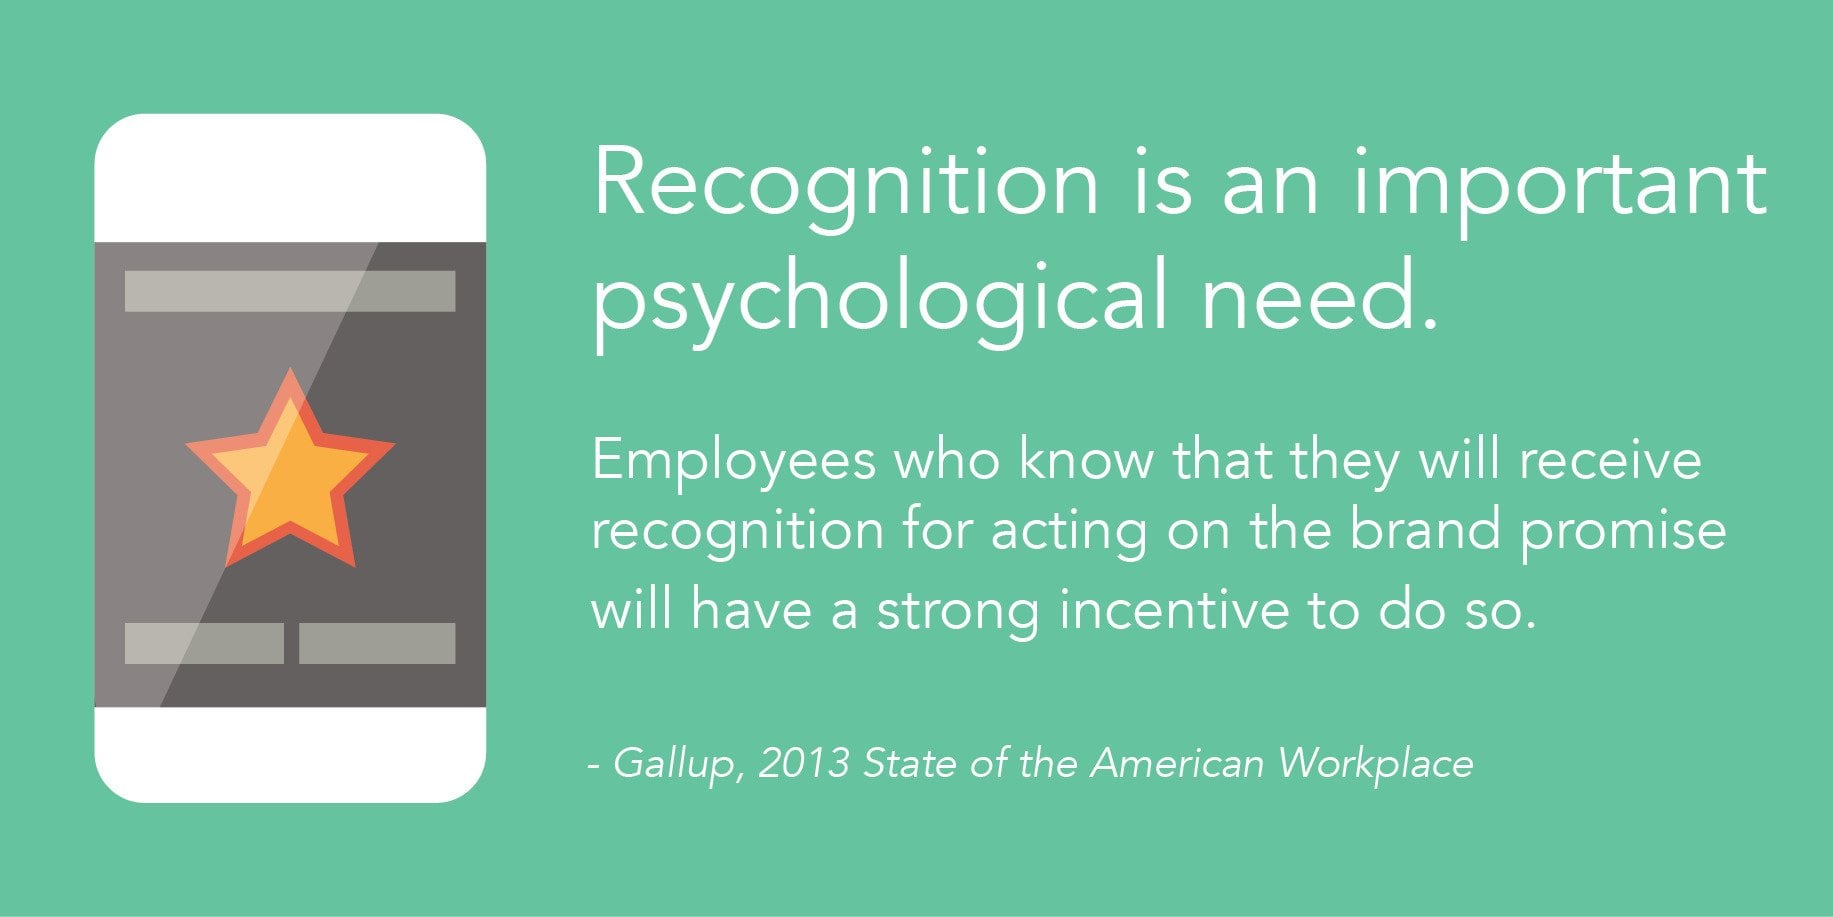 Gallup quote on employee rewards and recognition | Nudge